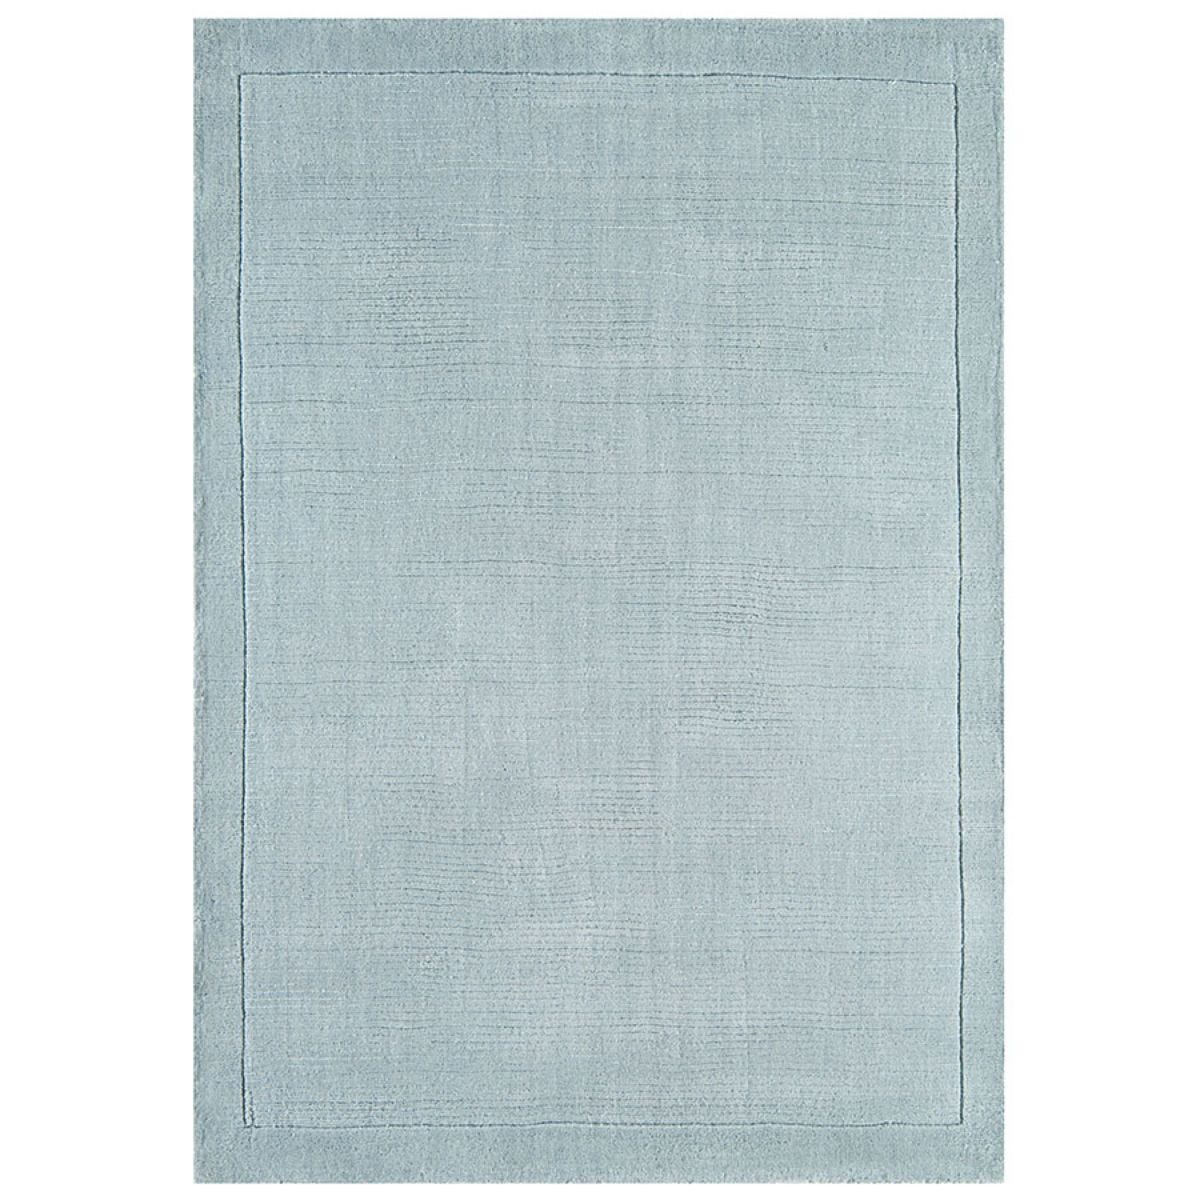 Asiatic Small York Handloom Rug, 80x150cm